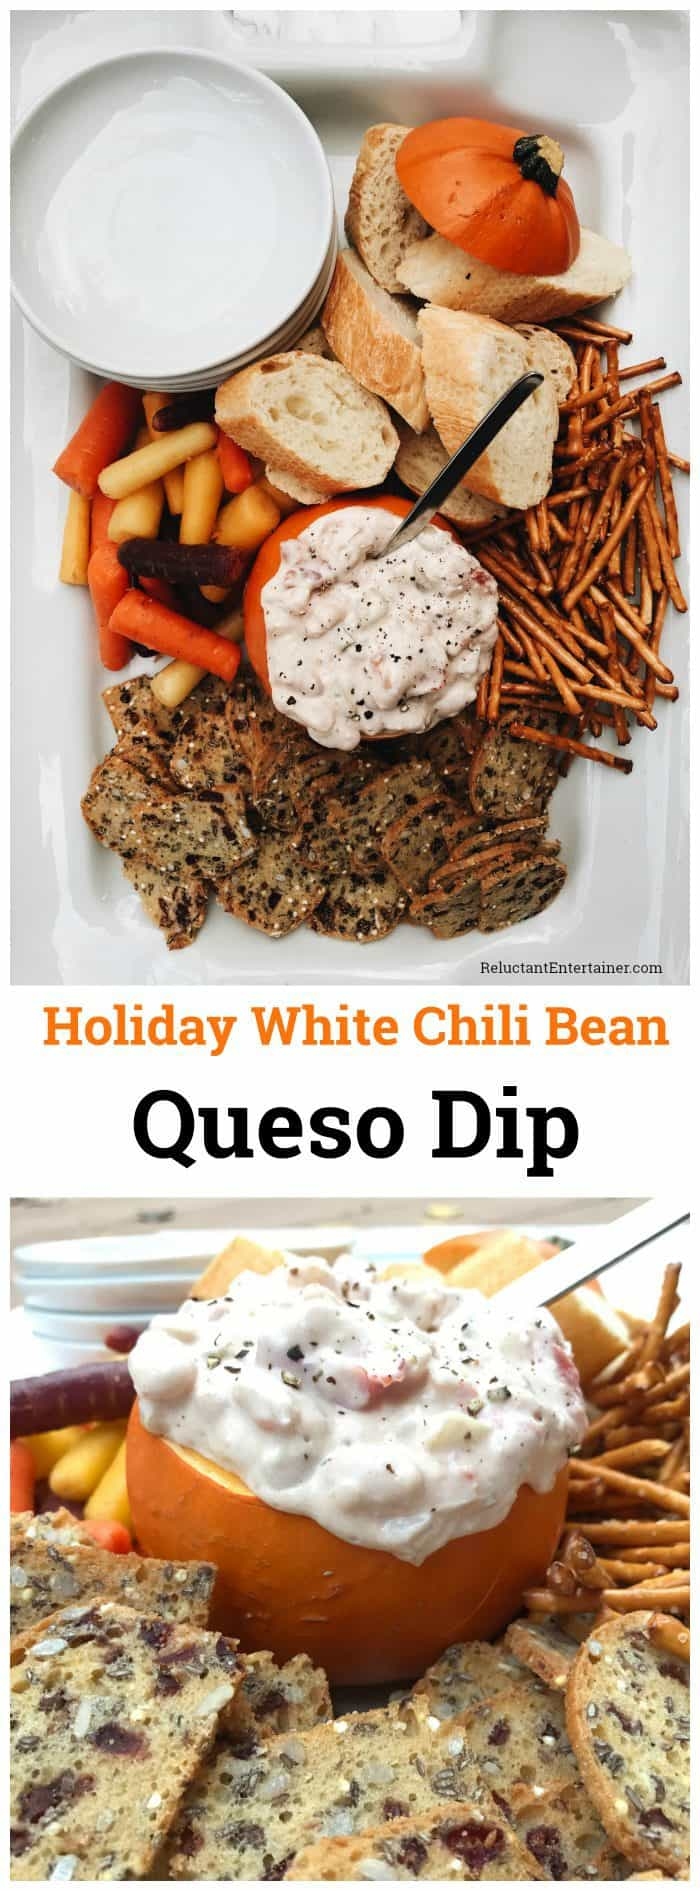 Holiday White Chili Bean Queso Dip